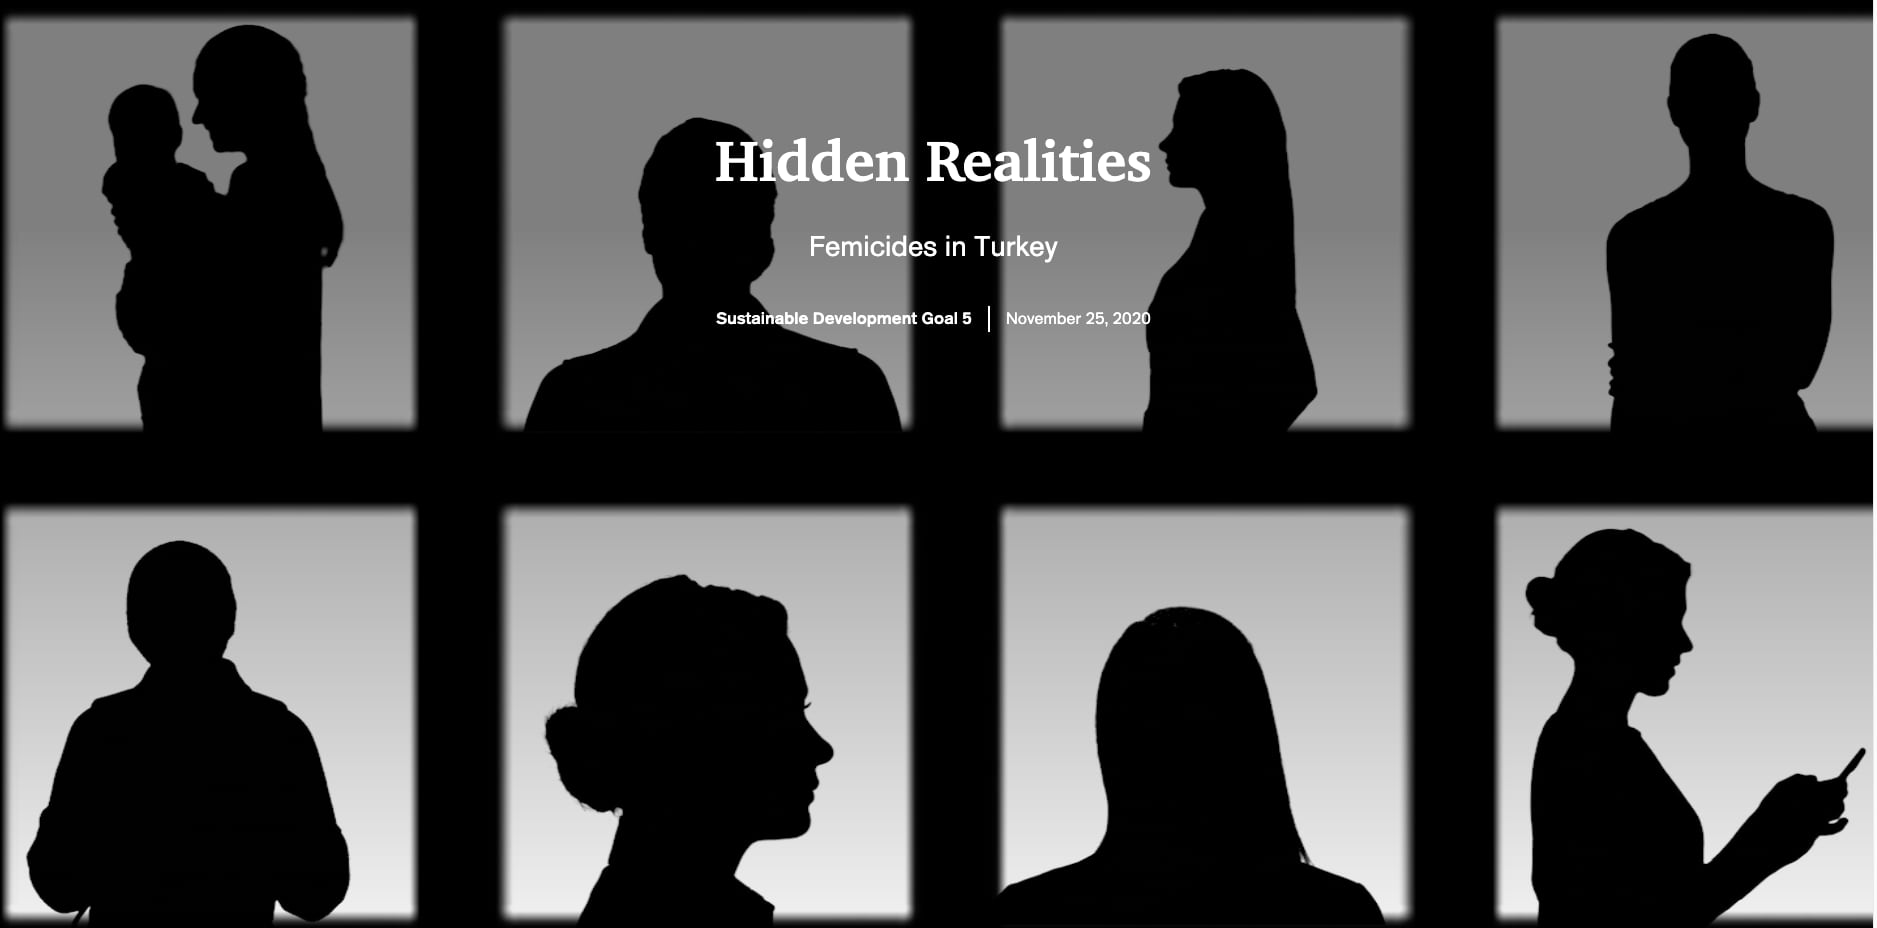 cover image uses silhouettes of women in boxes